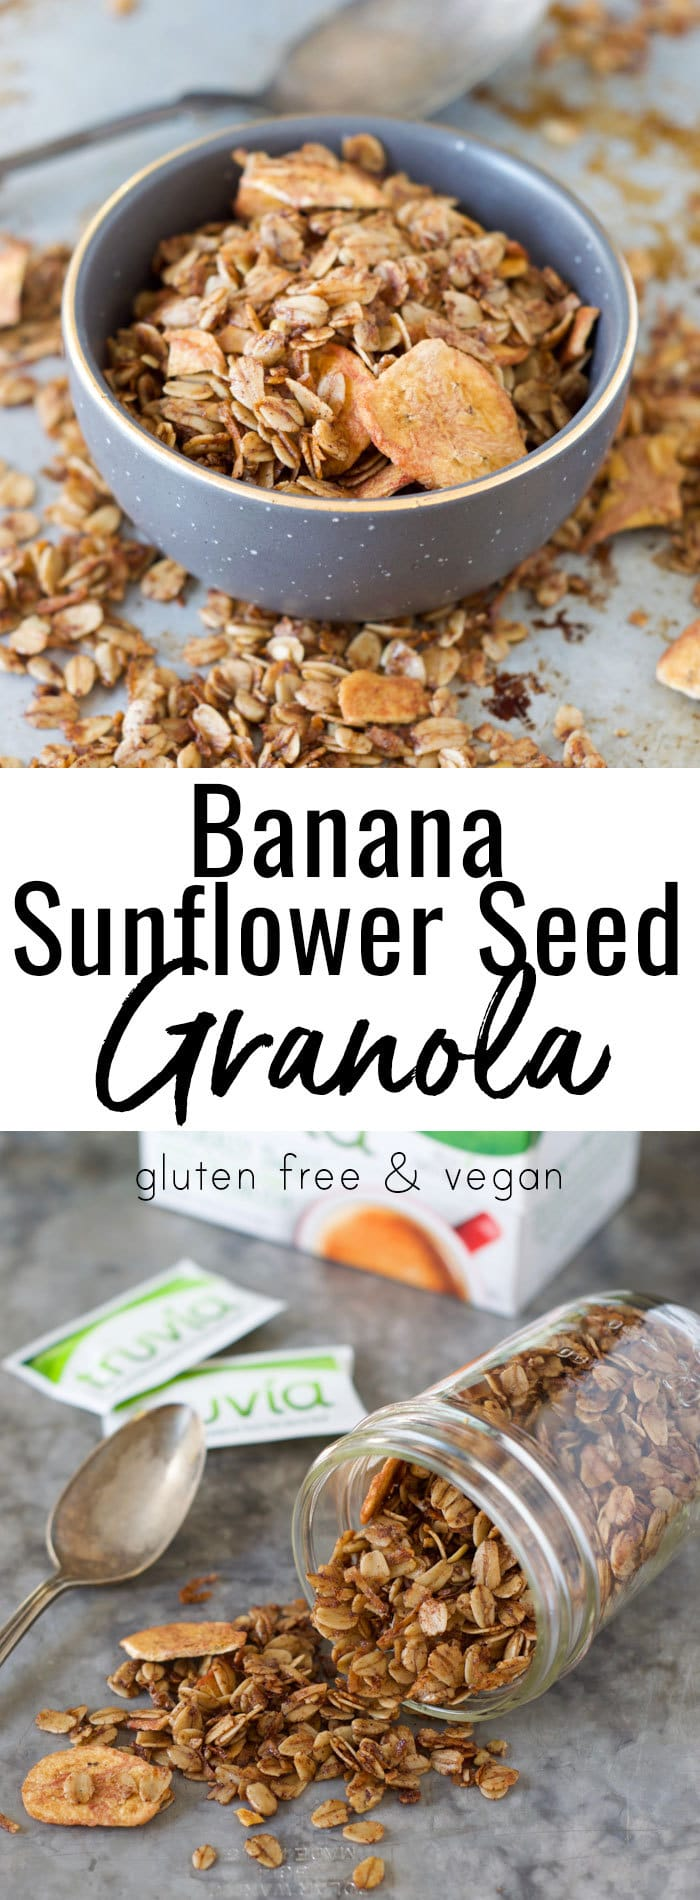 Looking for a great meal prep breakfast recipe that's lower in sugar and allergy friendly? Make this gluten free and vegan Banana Sunflower Seed Granola recipe on Sunday and have it for breakfast and snacks the rest of the week! - #AD @Truvia #PickNaturesSweetness #Cbias @TheFitCookie